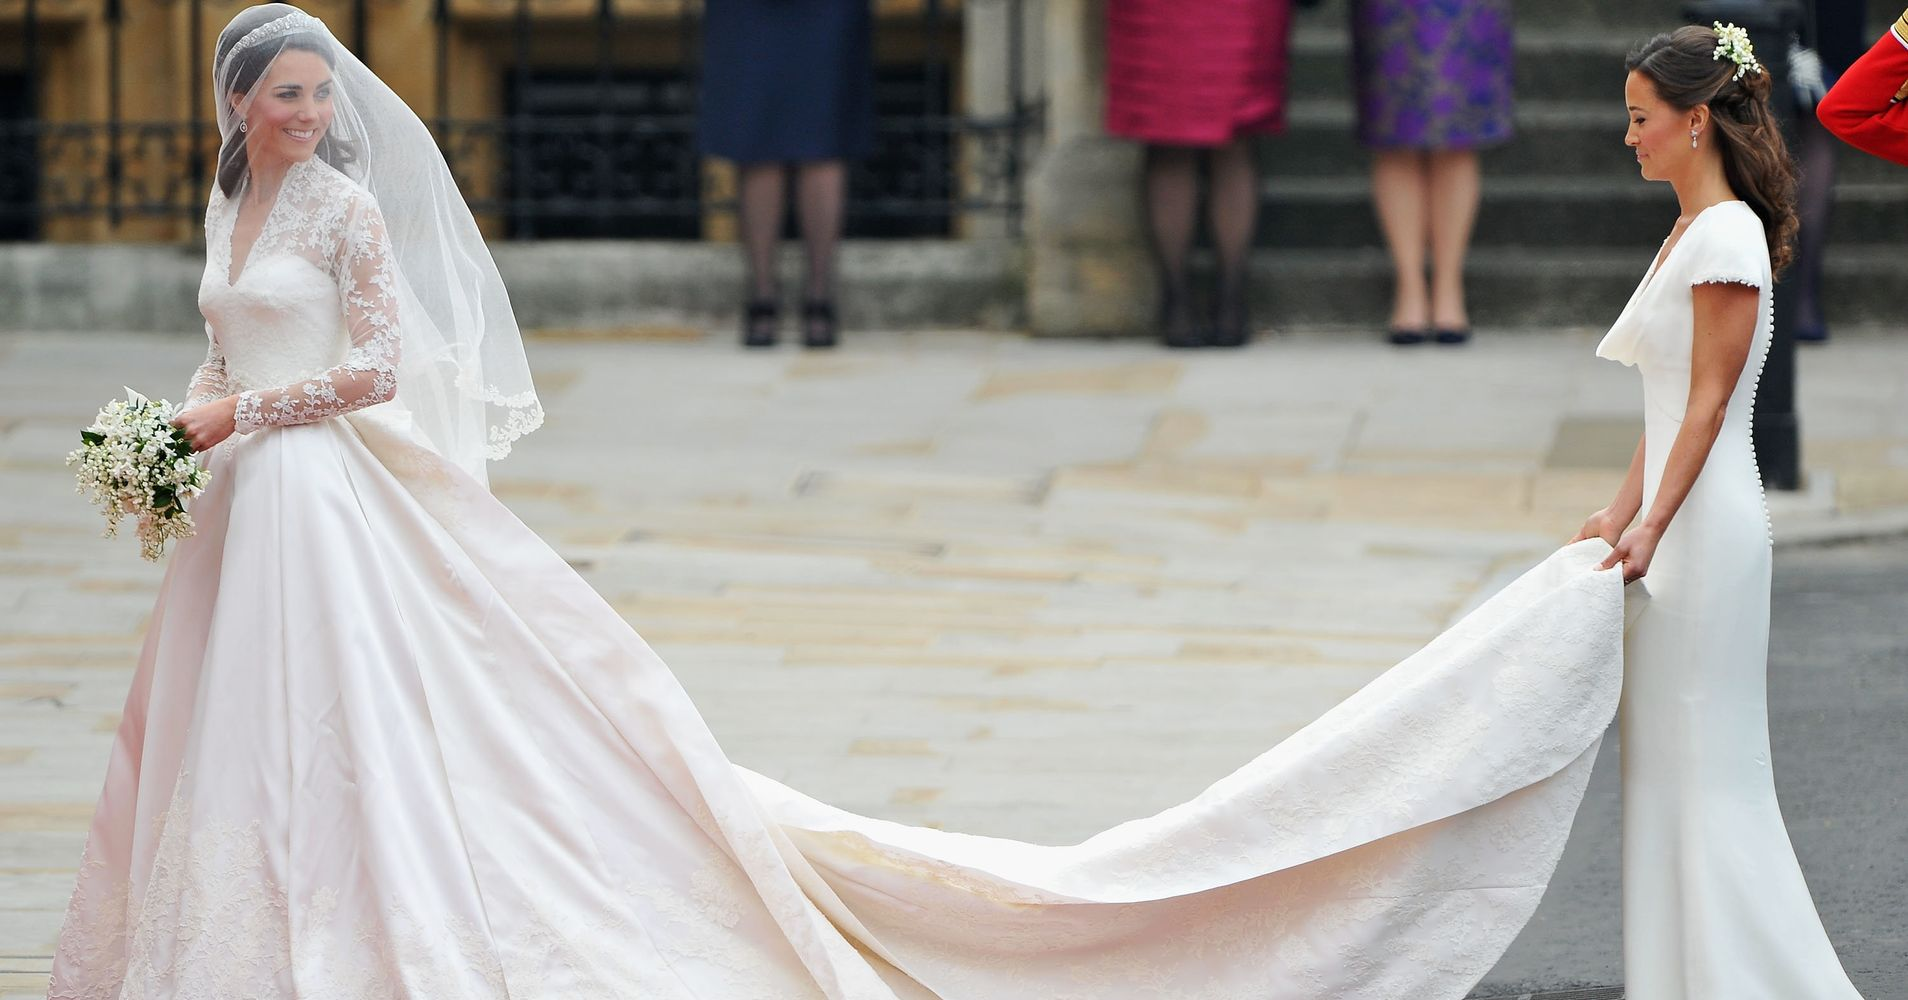 We Can Thank Queen Victoria For Popularizing White Wedding Dresses